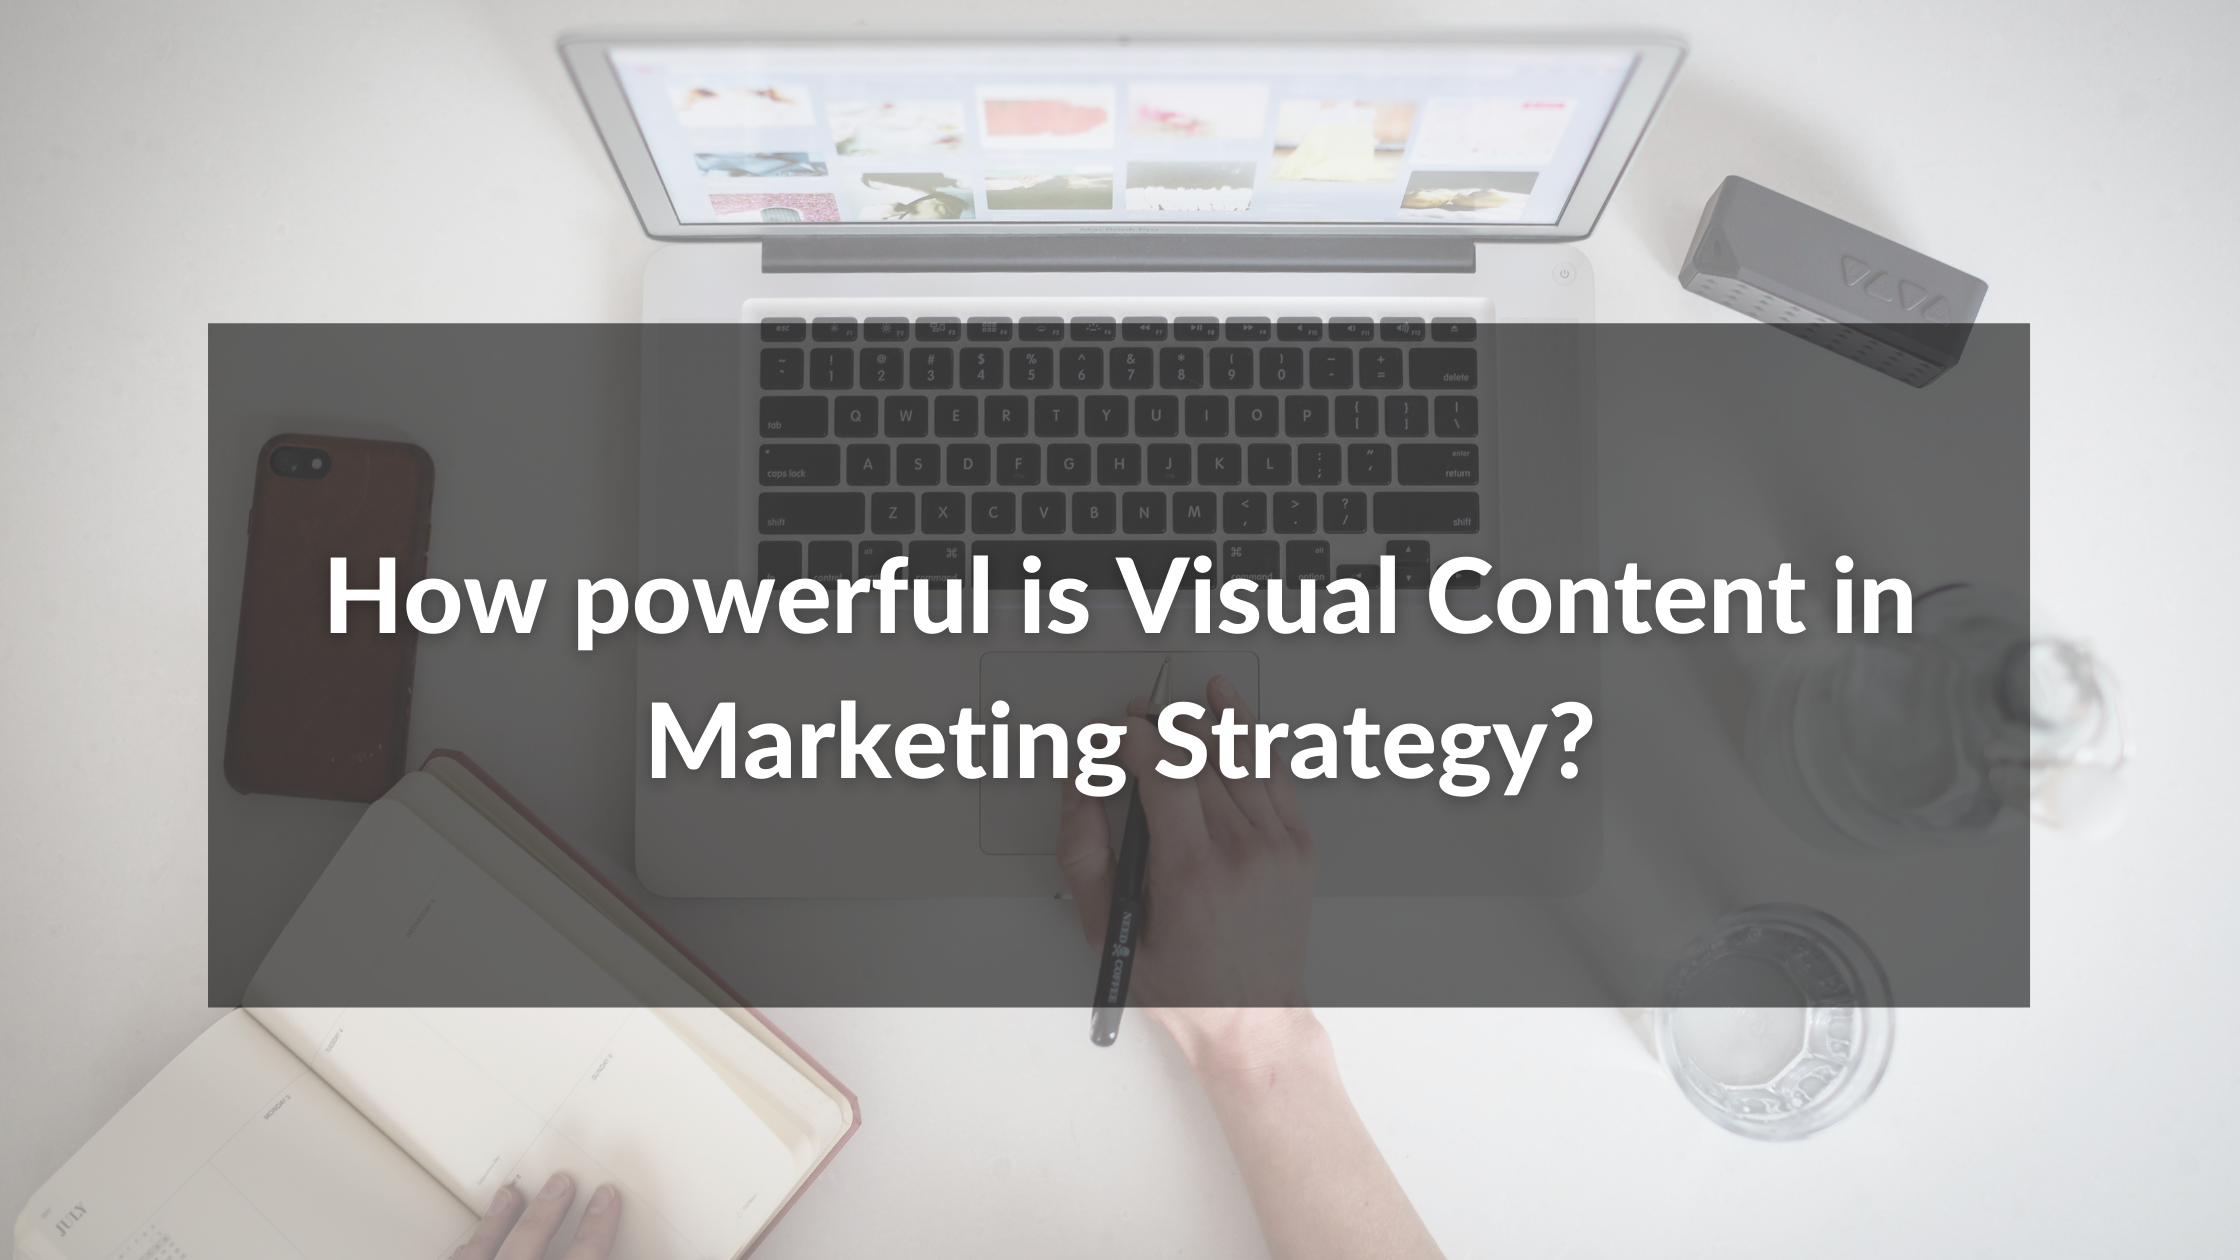 Visual content is used for marketing stragies